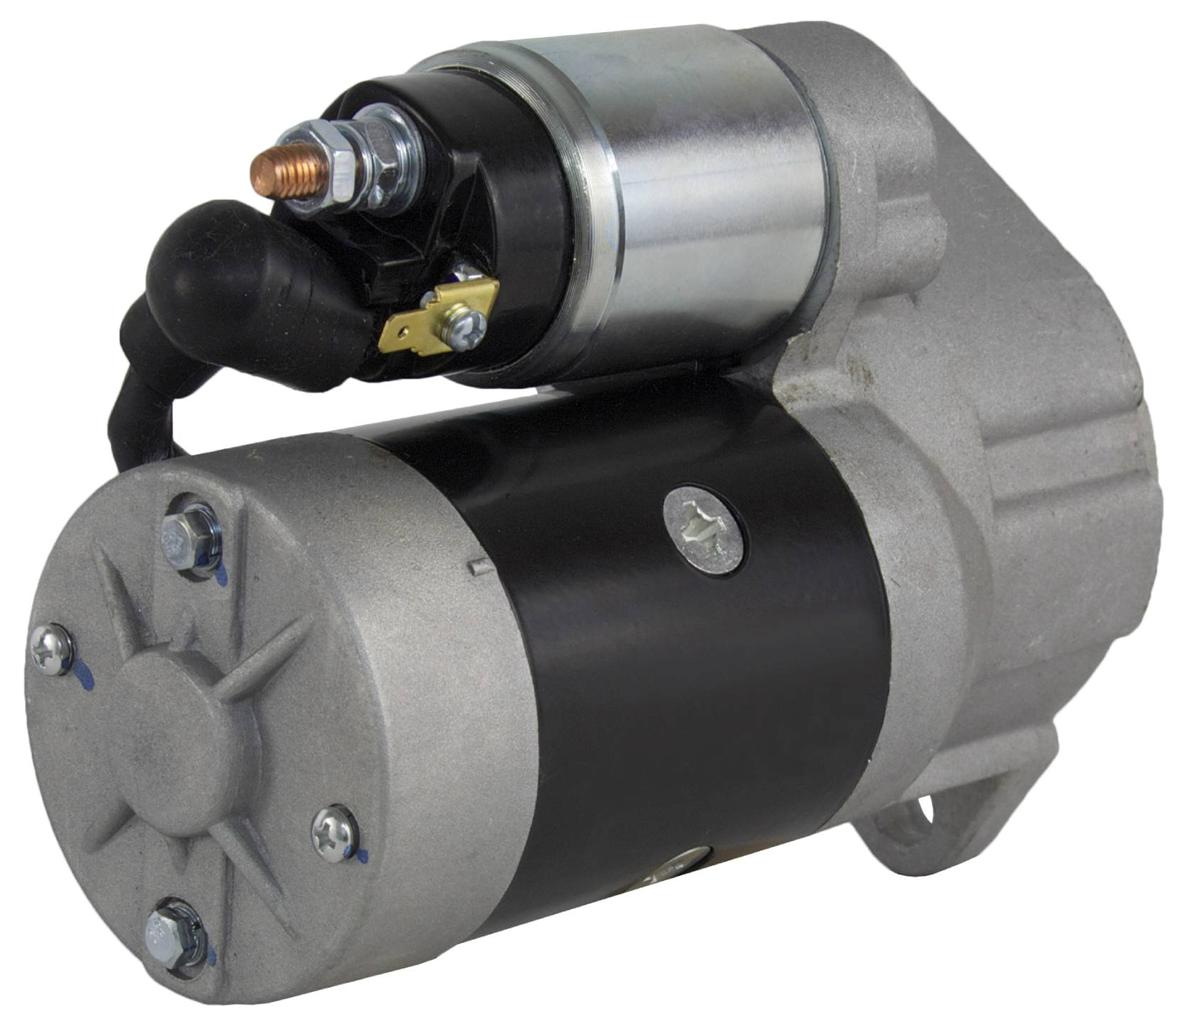 new starter fit motor ingersoll rand 185 p185 air